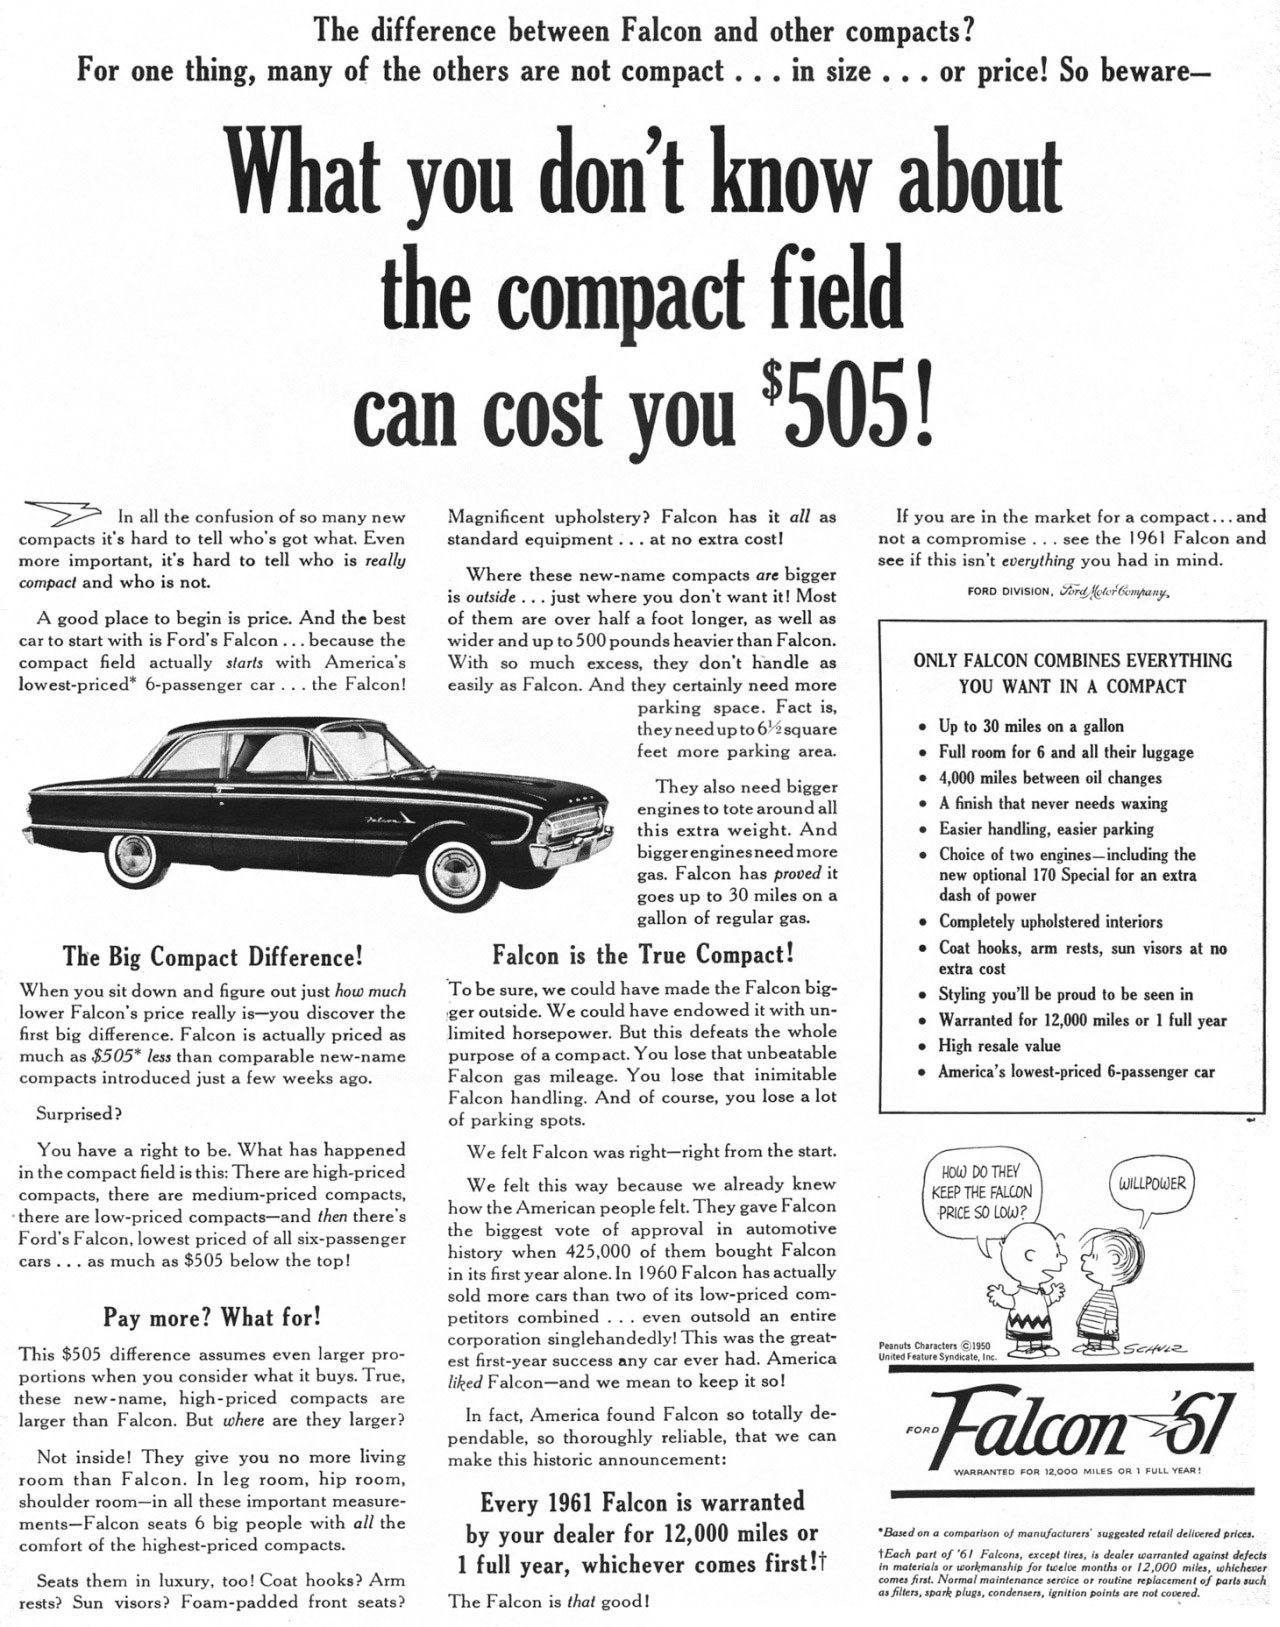 The difference between Falcon and other compacts? For one thing, many of the others are not compact . . . in size . . . or price! So beware— What you don't know about the compact field can cost you '505!  In all the confusion of so many new compacts its hard to tell who's got what. Even more important, its hard to tell who is really compact and who is not. A good place to begin is price. And the best car to start with is Ford's Falcon ... because the compact field actually starts with America's lowest-priced. 6-passenger car ... the Falcon!  Magnificent upholstery? Falcon has it all as standard equipment ... at no extra cost! Where these new-name compacts are bigger is outside . . . just where you don't want it! Most of them are over half a foot longer, as well as wider and up to 500 pounds heavier than Falcon. With so much excess, they don't handle as easily as Falcon. And they certainly need rnore parking space. Fact is, they need up to 61/2 square feet more parking area. They also need bigger engines to tote around all this extra weight. And bigger engines need more gas. Falcon has proved it goes up to 30 miles on a gallon of regular gas. Falcon is the True Compact! To be sure, we could have made the Falcon big-ger outside. We could have endowed it with un-limited horsepower. But this defeats the whole purpose of a compact. You lose that unbeatable Falcon gas mileage. You lose that inimitable Falcon handling. And of course, you lose a lot of parking spots. We felt Falcon was right—right from the start. We felt this way because we already knew how the American people felt. They gave Falcon the biggest vote of approval in automotive history when 425,000 of them bought Falcon in its first year alone. In 1960 Falcon has actually sold more cars than two of its low-priced com-petitors combined . . . even outsold an entire corporation singlehandedly! 'This was the great-est first-year success any car ever had. America liked Falcon—and we mean to keep it so! In fact, America found Falcon so totally de-pendable, so thoroughly reliable, that we can make this historic announcement:   The Big Compact Difference! When you sit down and figure out just how much lower Falcon's price really is—you discover the first big difference. Falcon is actually priced as much as $505 less than comparable new-name compacts introduced just a its weeks ago.  Surprised? You have a right to be. What has happened in the compact field is this: There are high-priced compacts, there are medium-priced compacts, • there are low-priced compacts—and then there's Ford's Falcon, lowest priced of all six-passenger cars ... as much as $505 below the top!  Pay more? What for! This $505 difference assumes even larger pro-portions when you consider what it buys. True, these new -narne, high-priced compacts are larger than Falcon. But where are they larger? Not inside! They give you no more living room than Falcon. In kg room, hip room, shoulder room—in all these important measure-ments—Falcon seats 6 big people with all the comfort of the highest-priced compacts.  Seats them in luxury, too! Coat hooks? Arm rests? Sun visors? Foam-padded front seats?  Every 1961 Falcon is warranted by your dealer for 12,000 miles or 1 full year, whichever comes first!t The Falcon is that good!  If you are in the market foss compact ... and not a compromise ... see the 1961 Falcon and see if this isn't everything you had in mind. FORD DIVISION. Jtrr/A4,61154a,  ONLY FALCON COMBINES EVERYTHING YOU WANT IN A COMPACT  • Up to 30 miles on a gallon • Full room for 6 and all their luggage • 4,000 miles between oil changes • A finish that never needs waxing • Easier handling, easier parking • Choice of two engines—including the new optional 170 Special for an extra dash of power • Completely upholstered interiors • Coat hooks, arm rests, sun visors at no extra cost • Styling you'll be proud to be seen in • Warranted for 12,000 miles or 1 full year • High resale value • America's lowest-priced 6-passenger car